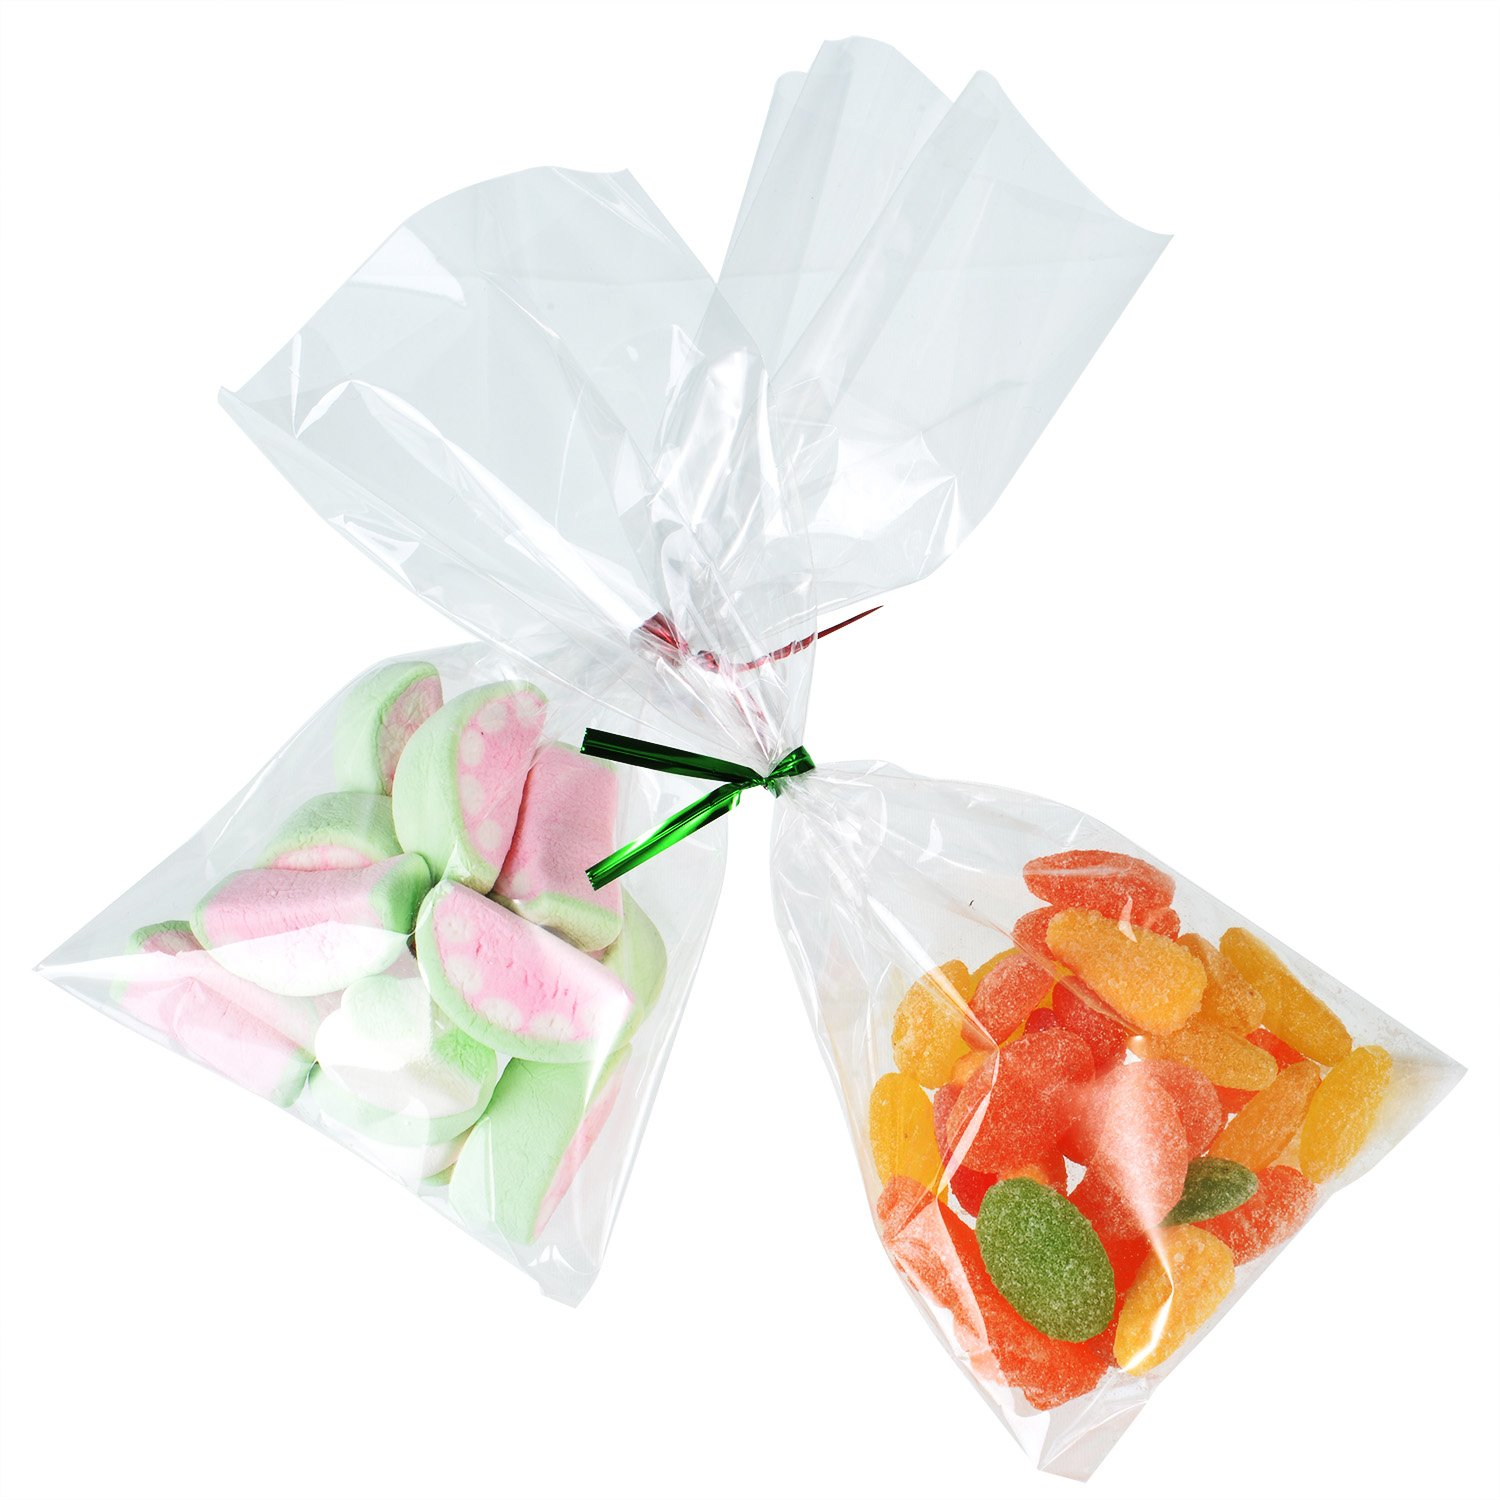 Amazon.com: Outus 300 Pack Clear Treat Bags Clear Cello Bags with ...